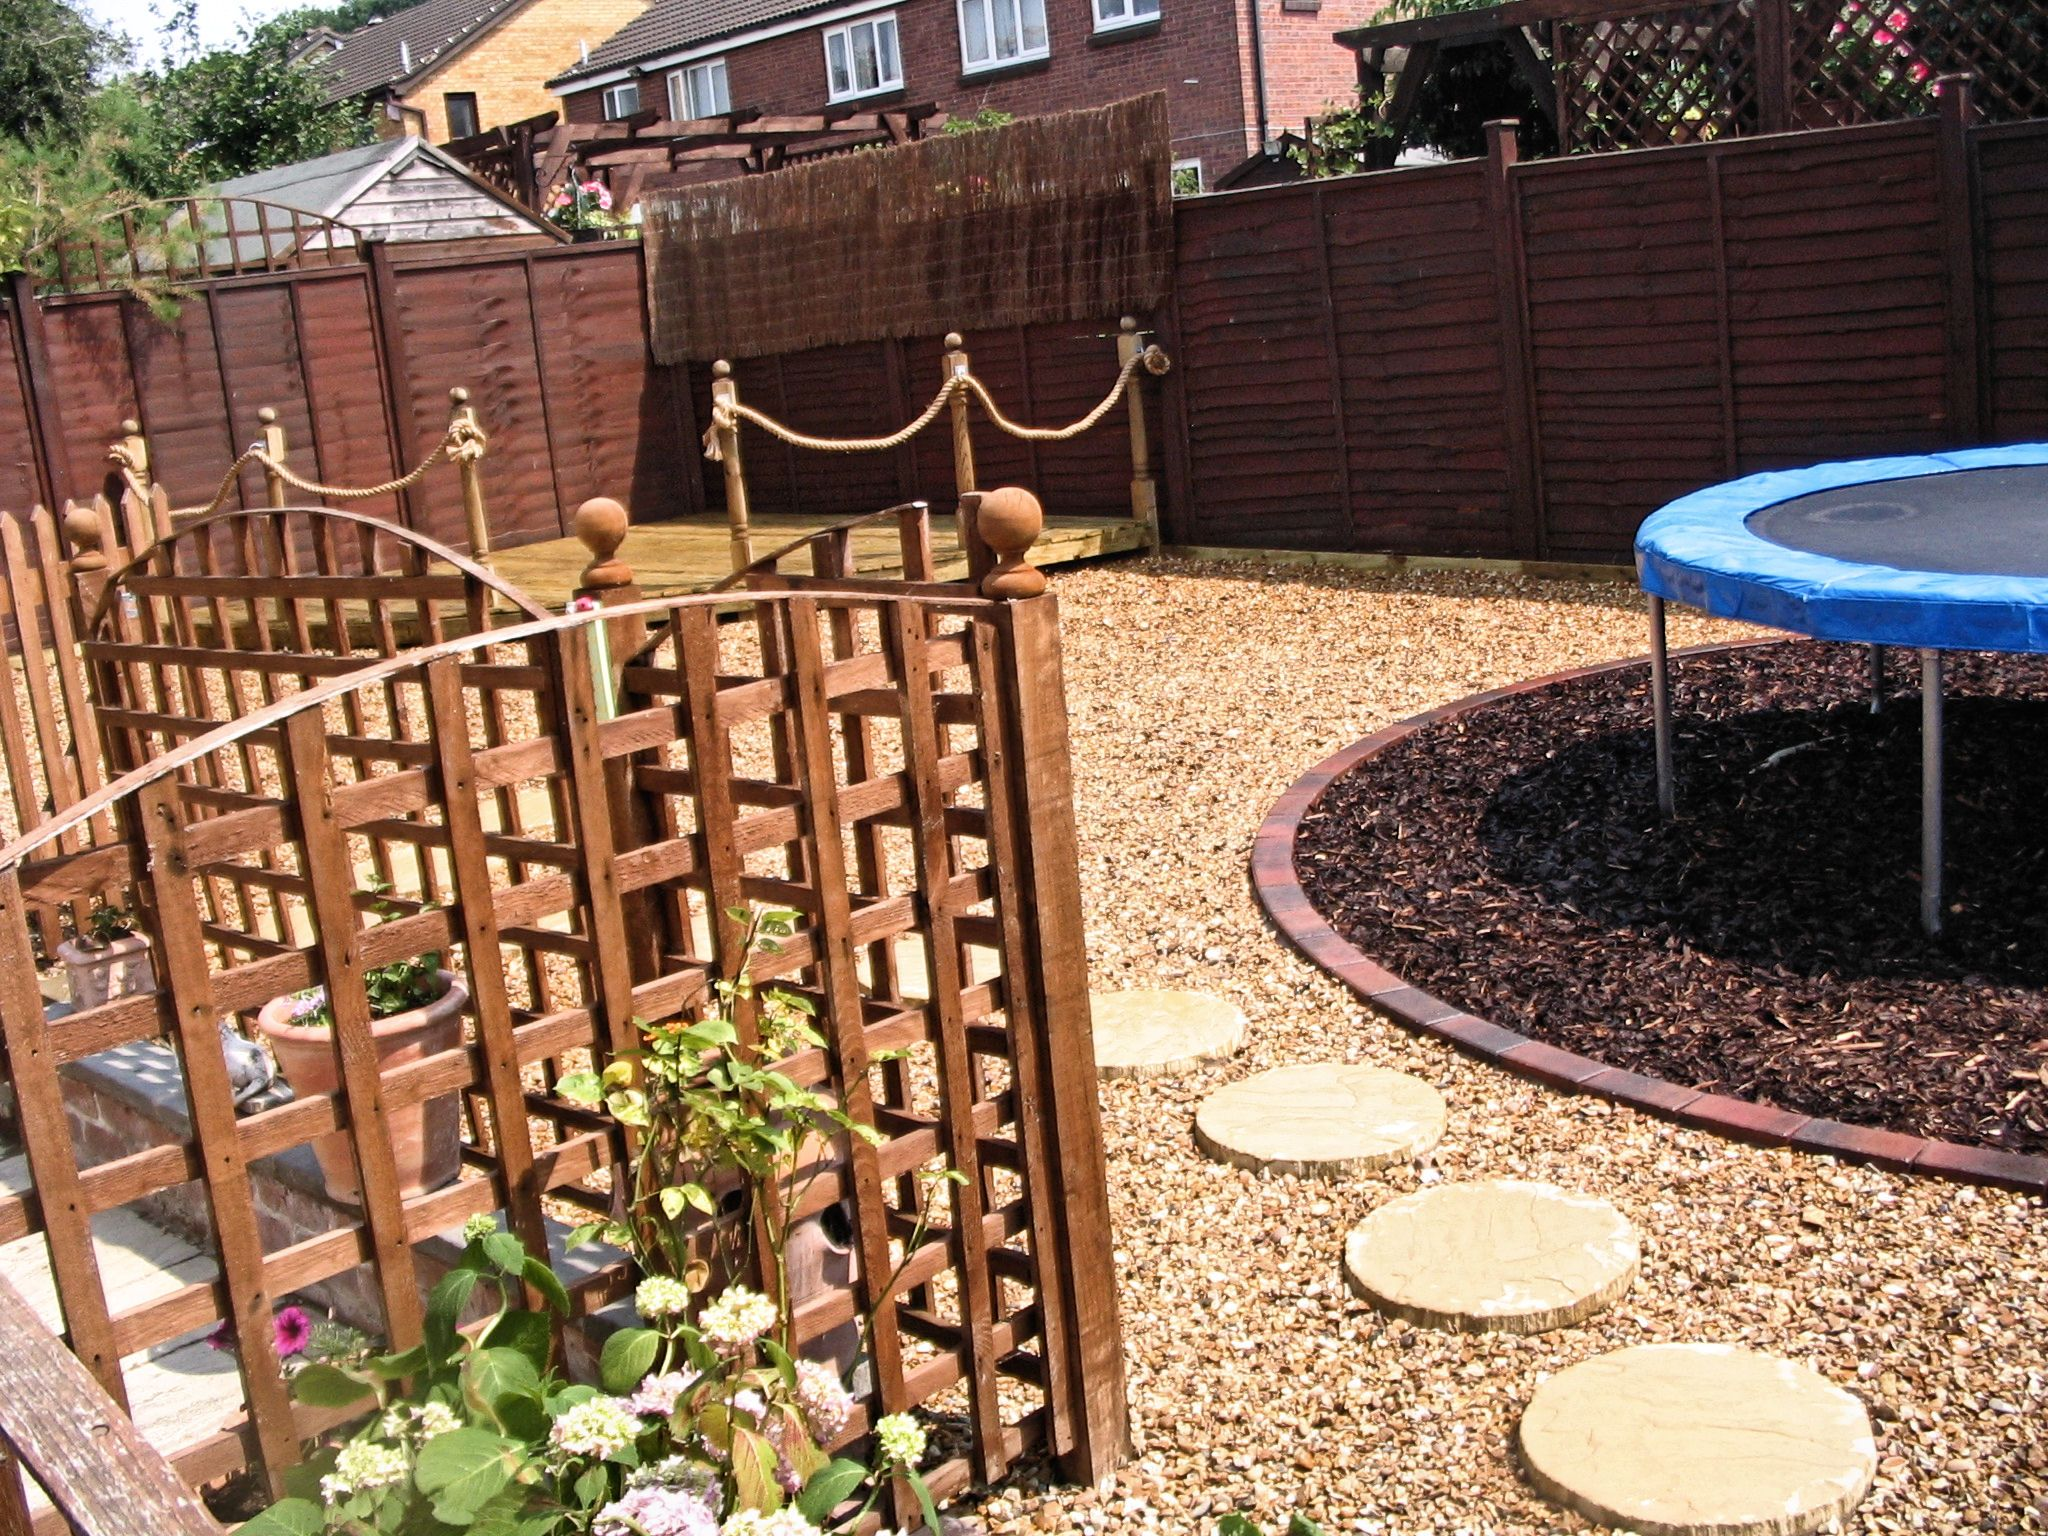 Merveilleux Outdoor Spaces · Trampoline Landscaping Ideas